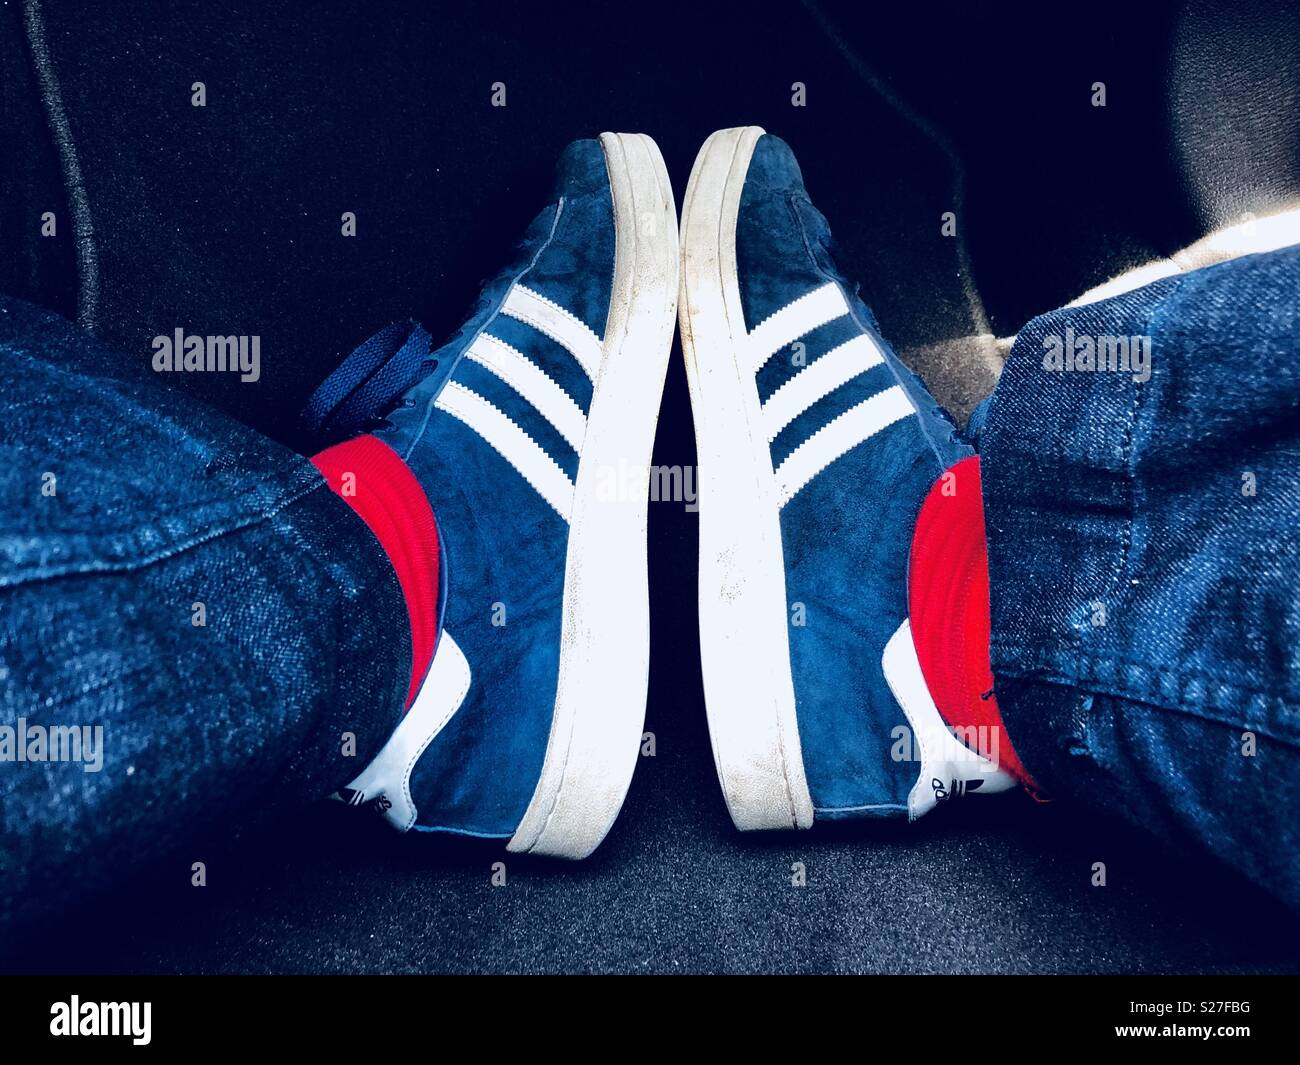 persona tanto Restricción  Feet in Adidas retro trainers red socks and part of legs in jeans Stock  Photo - Alamy